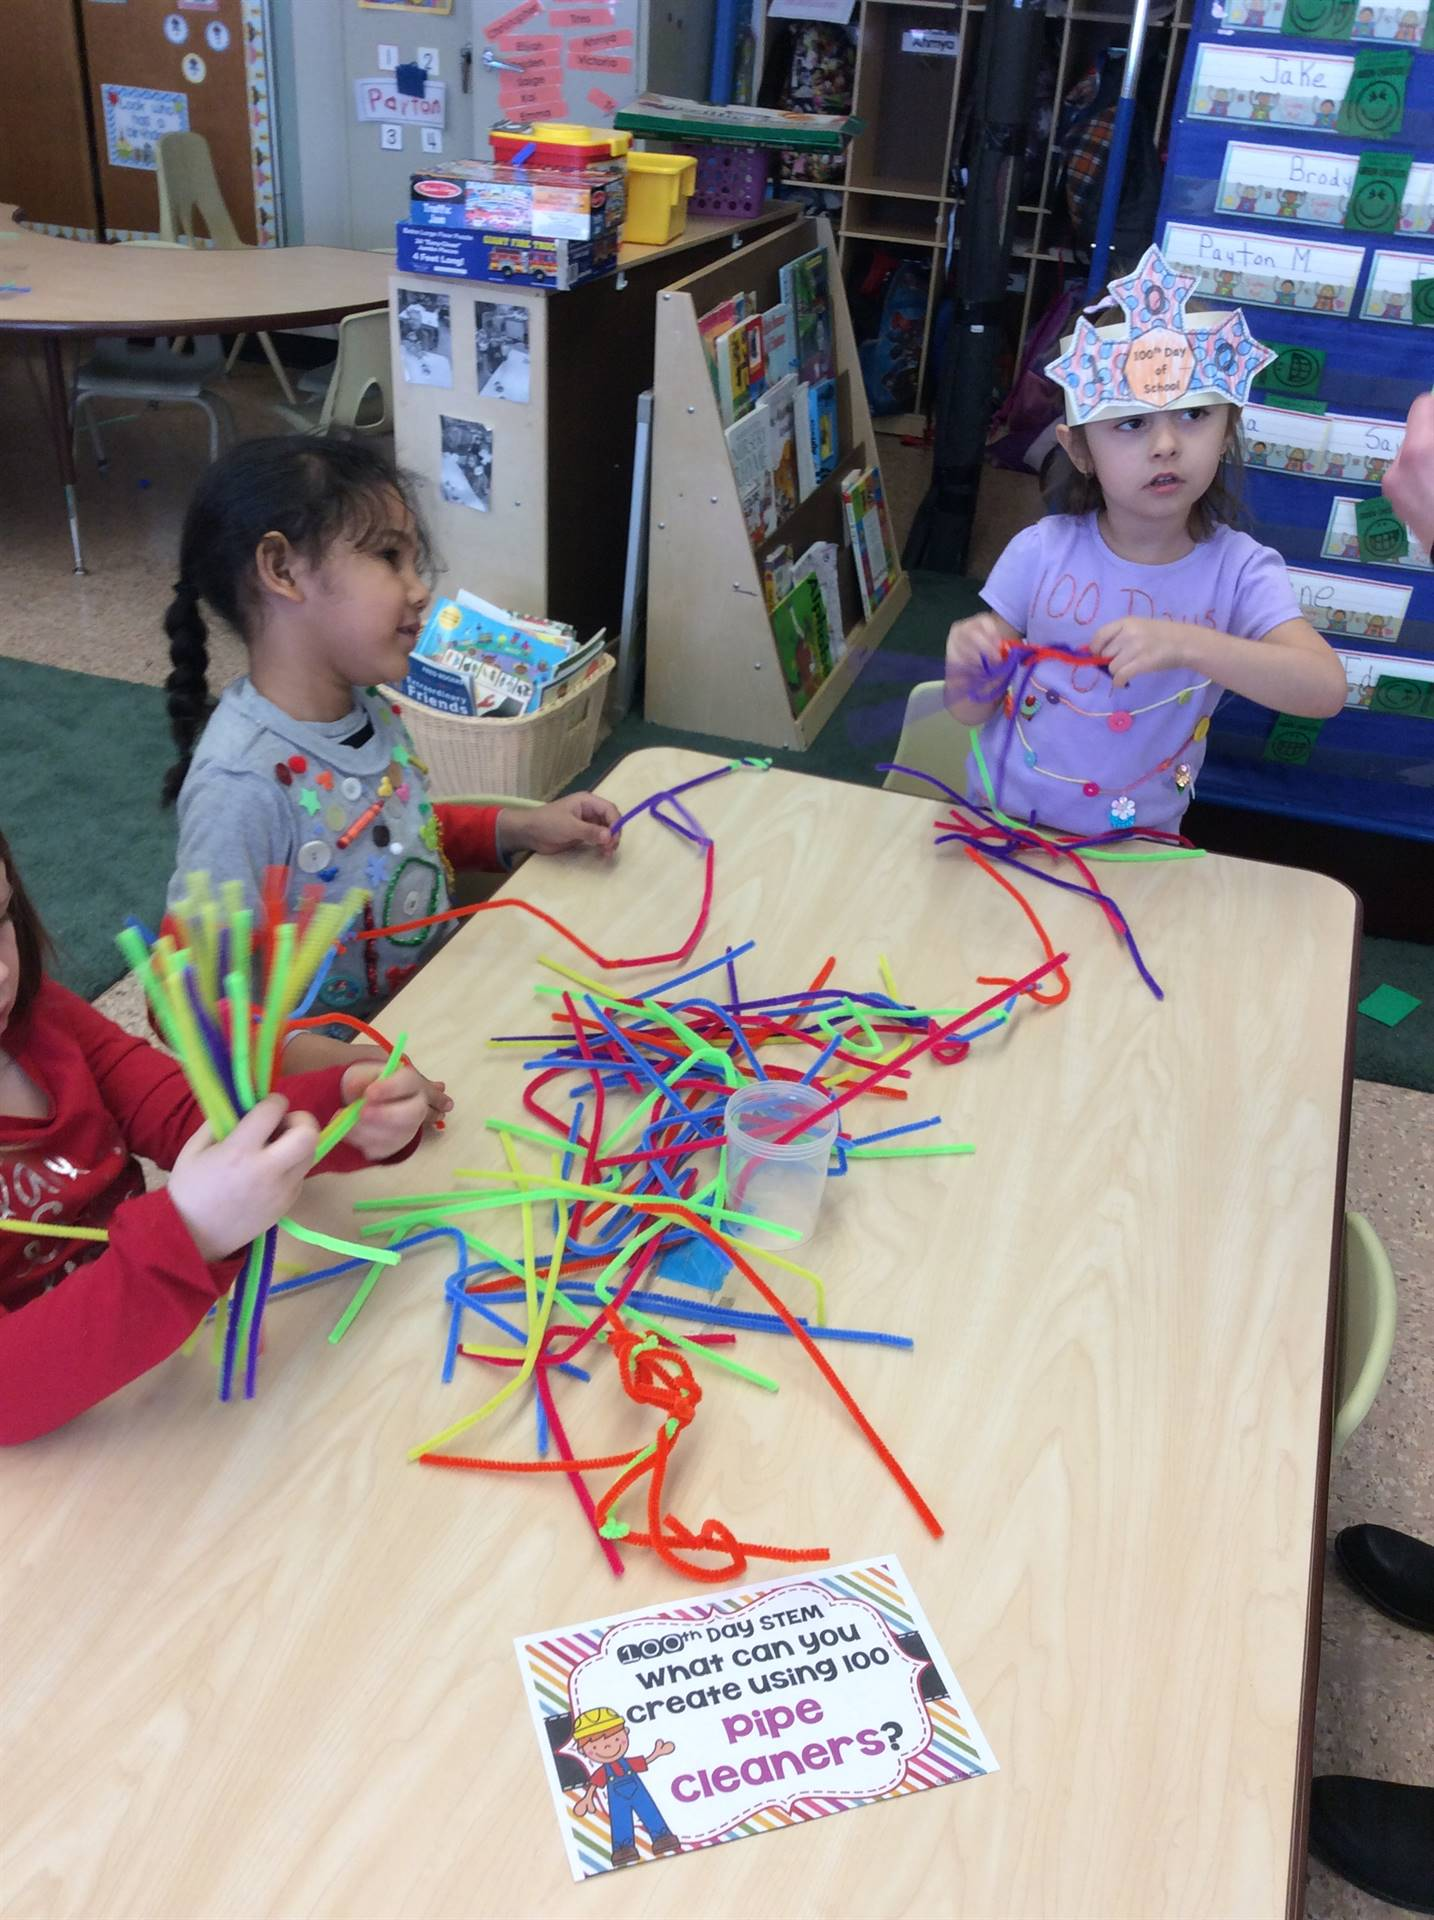 Three pre-k girls attempting to make a Christmas tree with 100 multicolored pipe cleaners